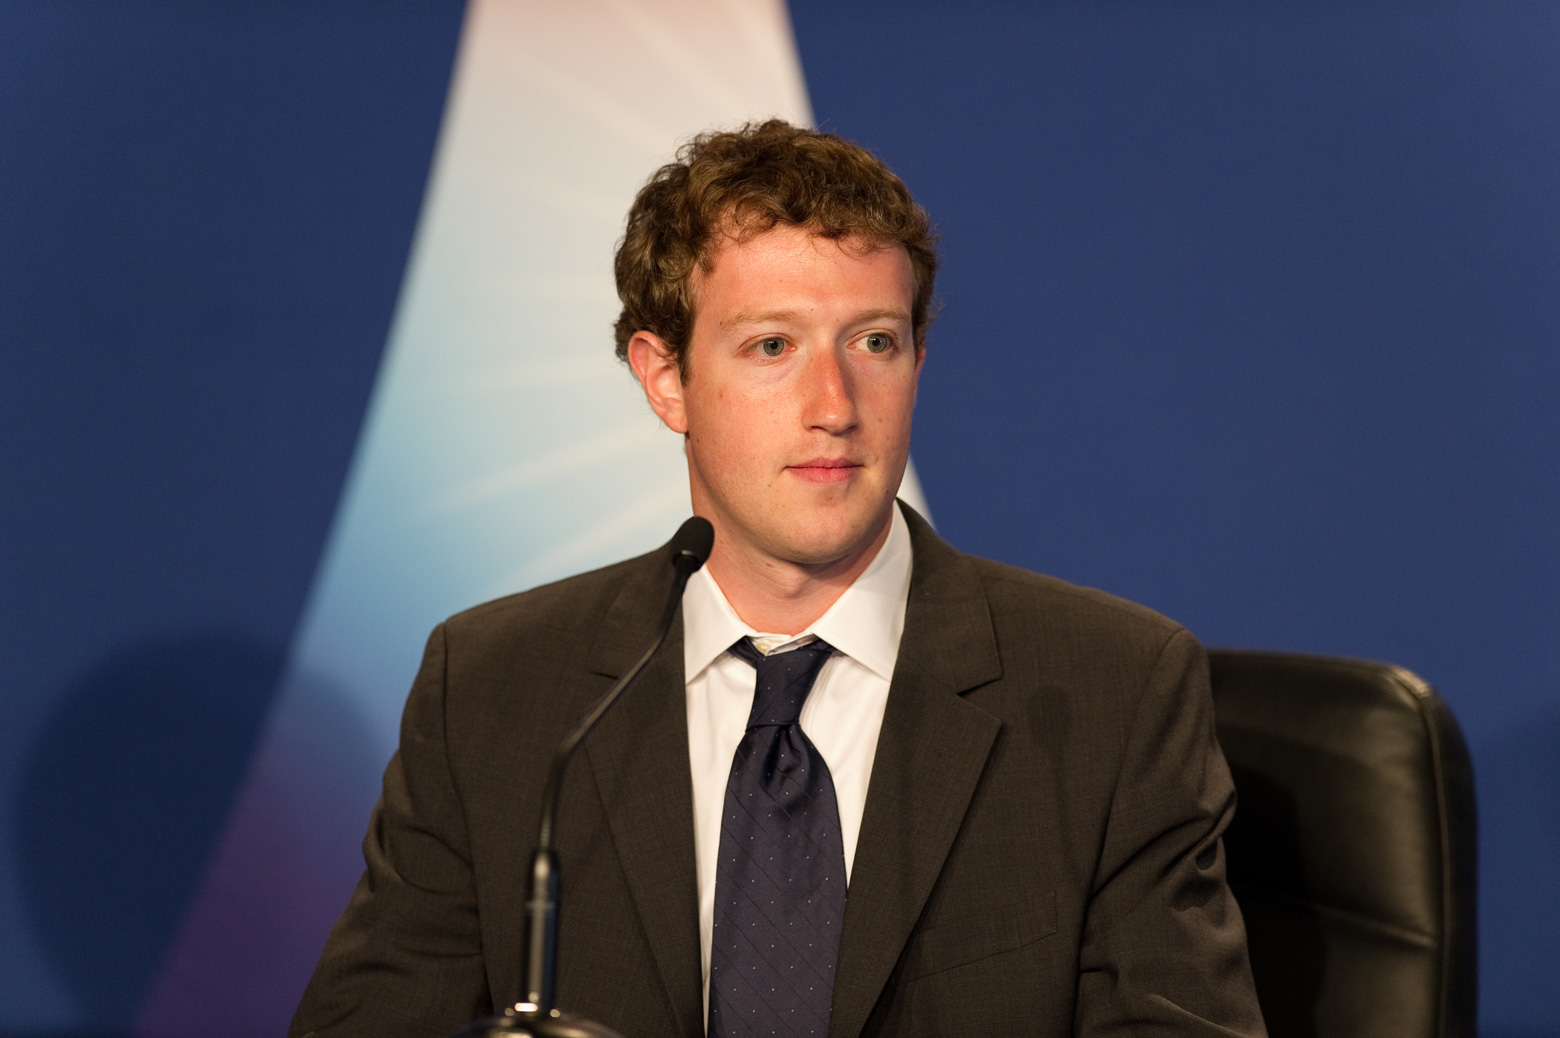 Facebook CEO Mark Zuckerberg seated at a table